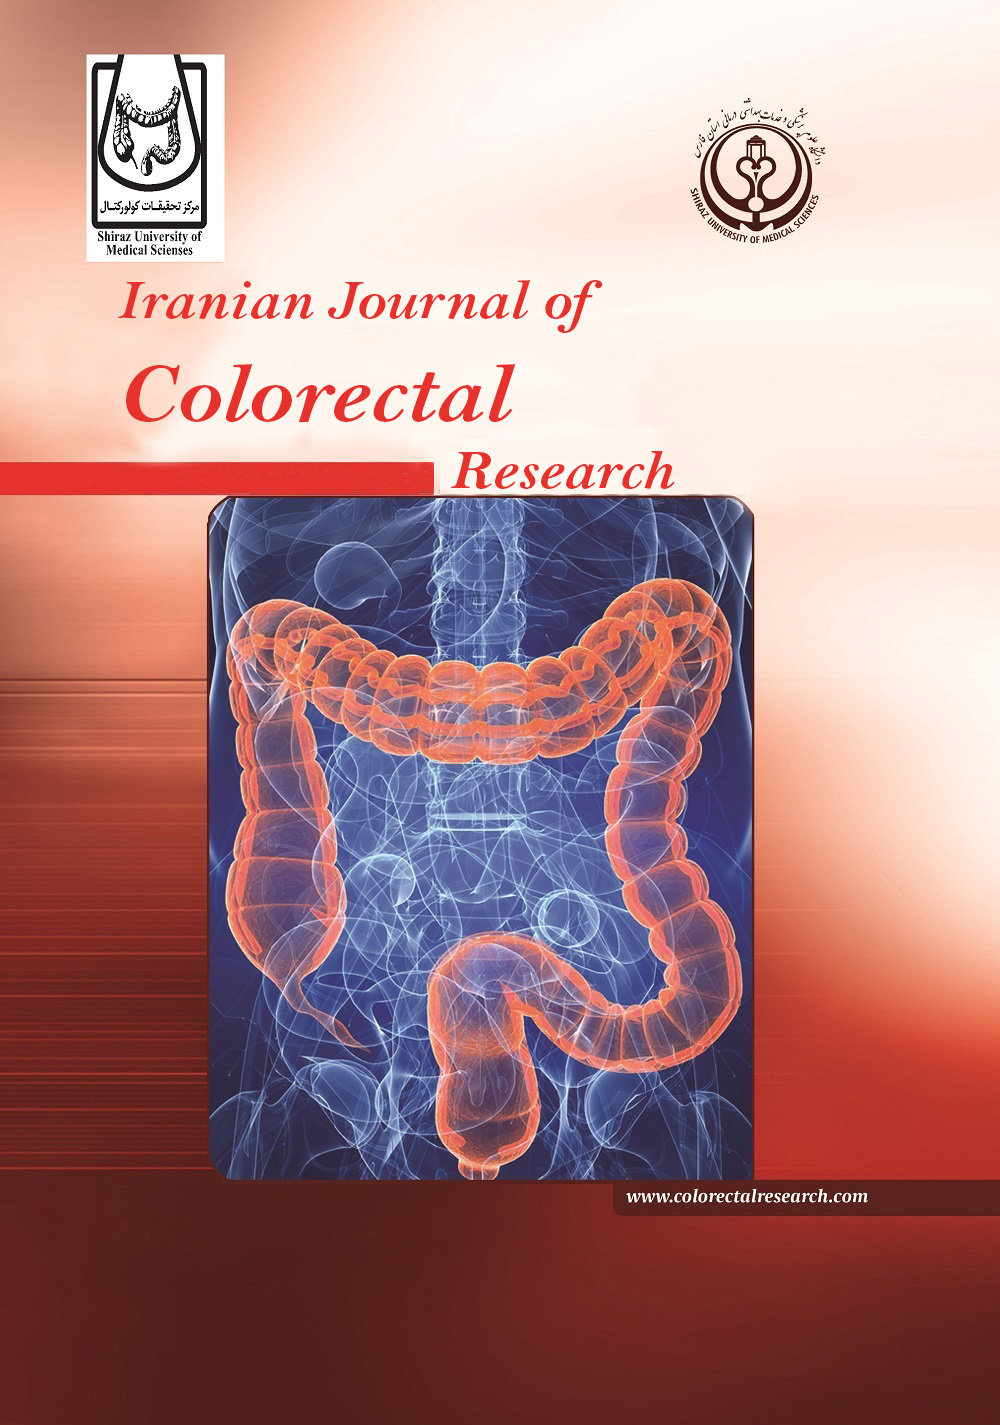 Annals of Colorectal Research